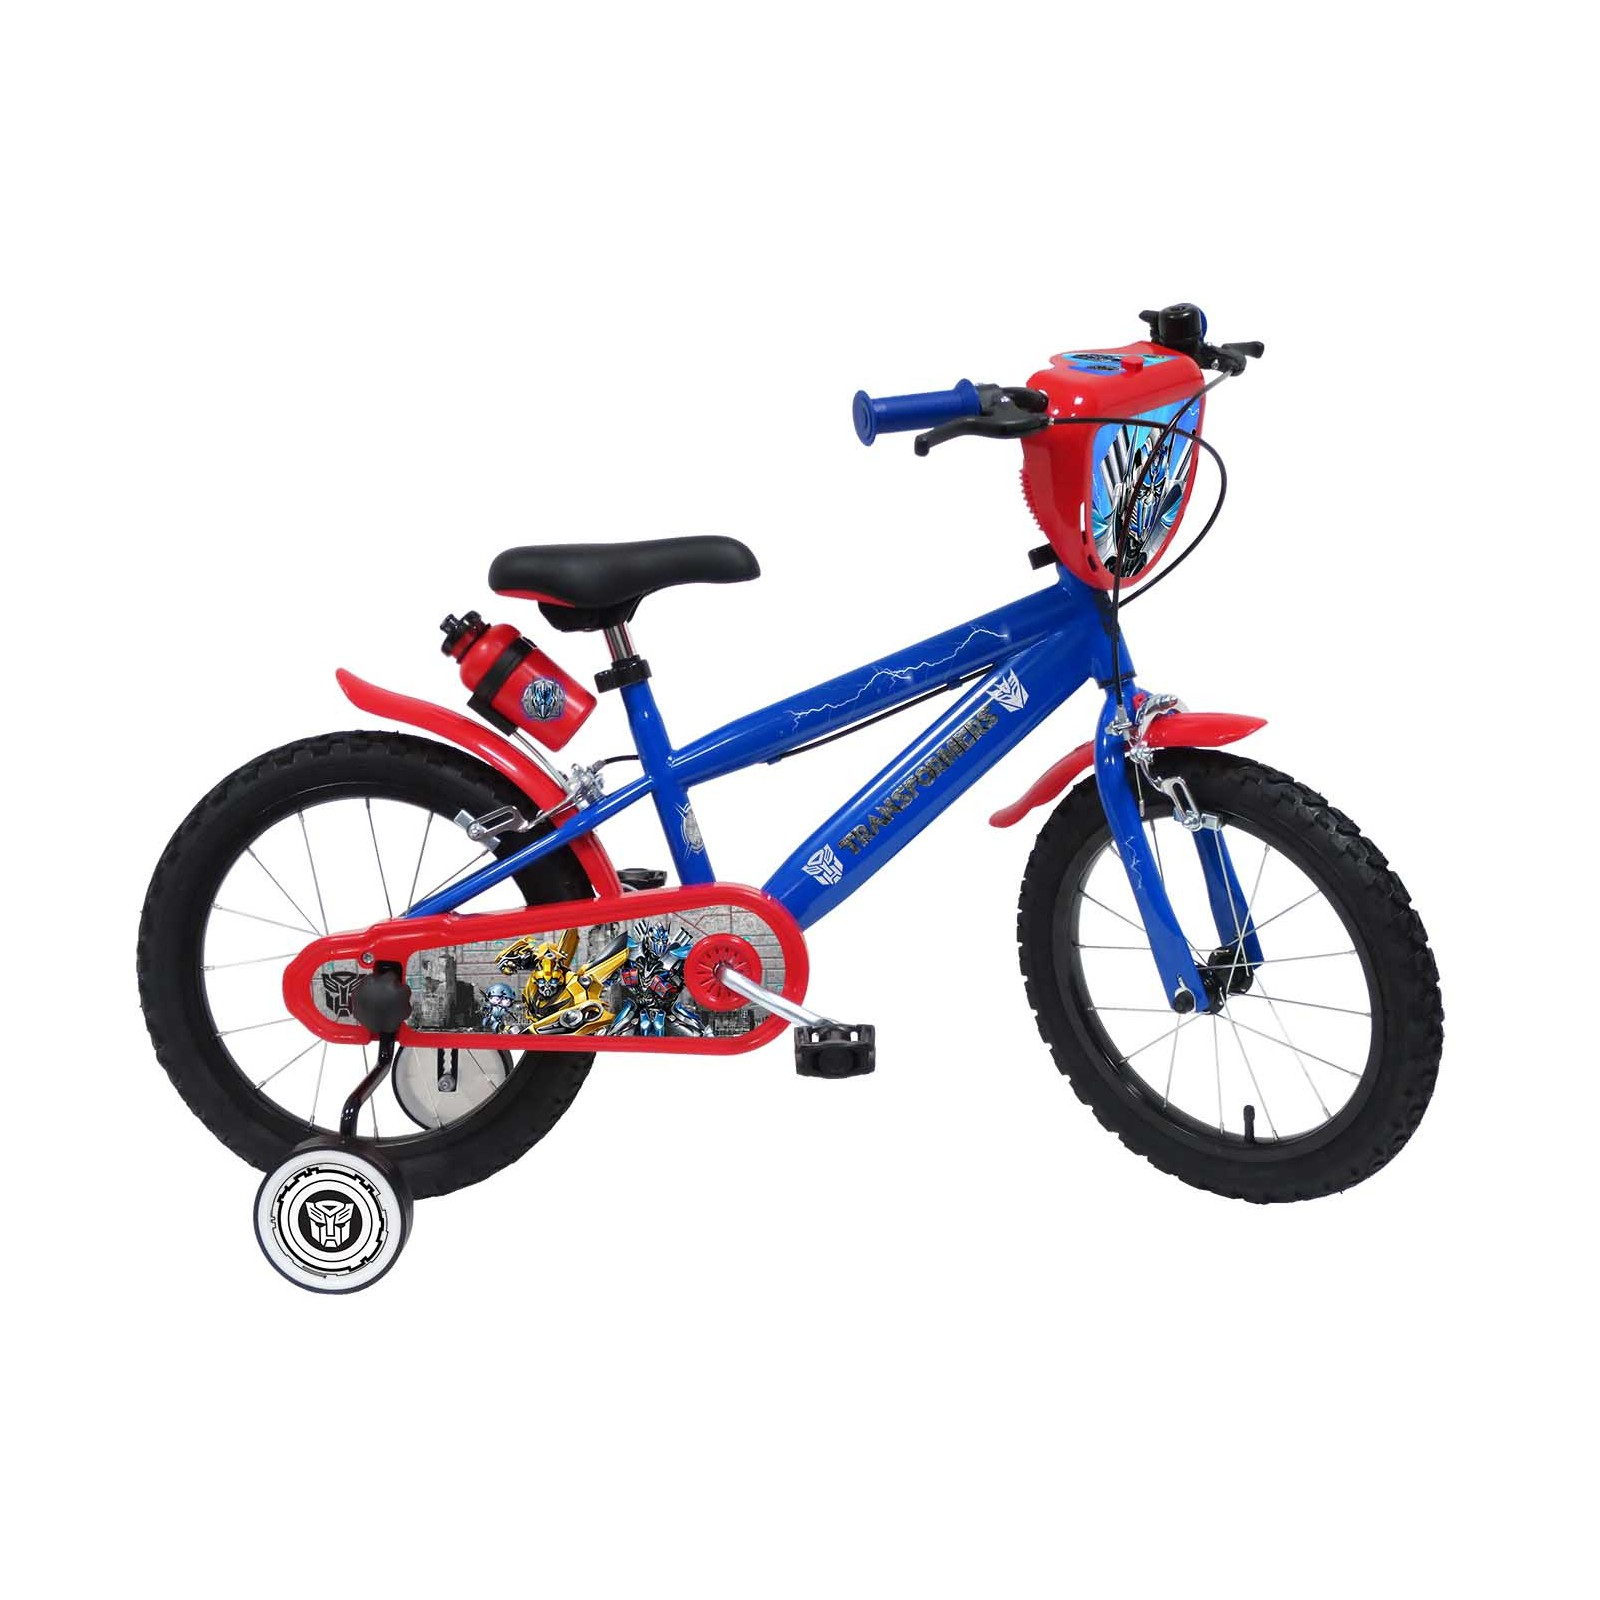 transformers bicycle best seller bicycle review. Black Bedroom Furniture Sets. Home Design Ideas